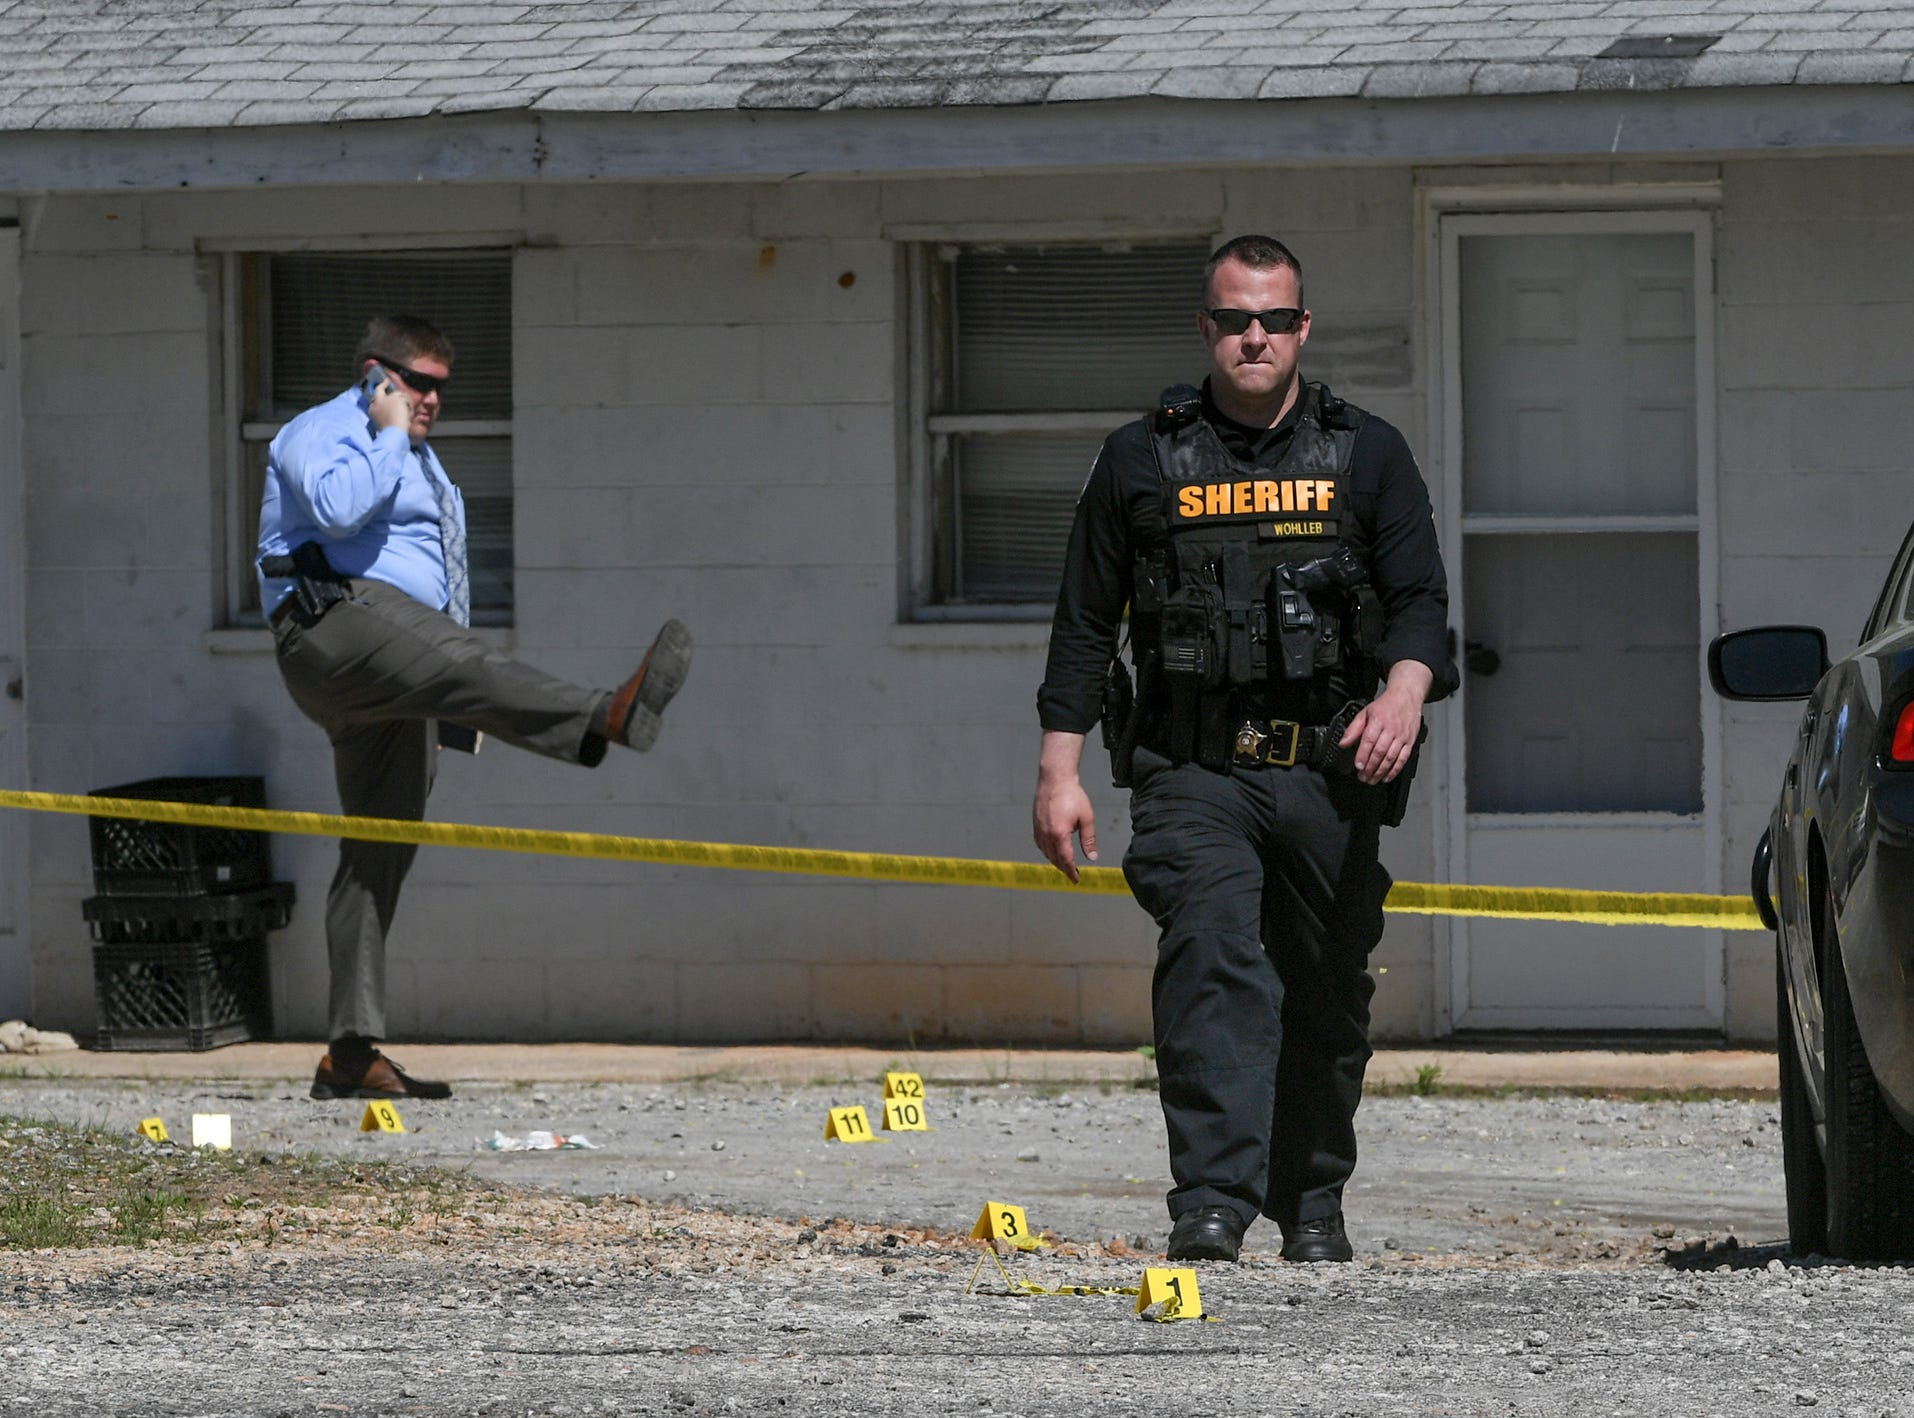 Anderson County Sheriff's Office investigators at Hilltop Motel on Hwy 29 where two people were reported shot and as many as seven were involved in a dispute Wednesday, April 10, 2019.